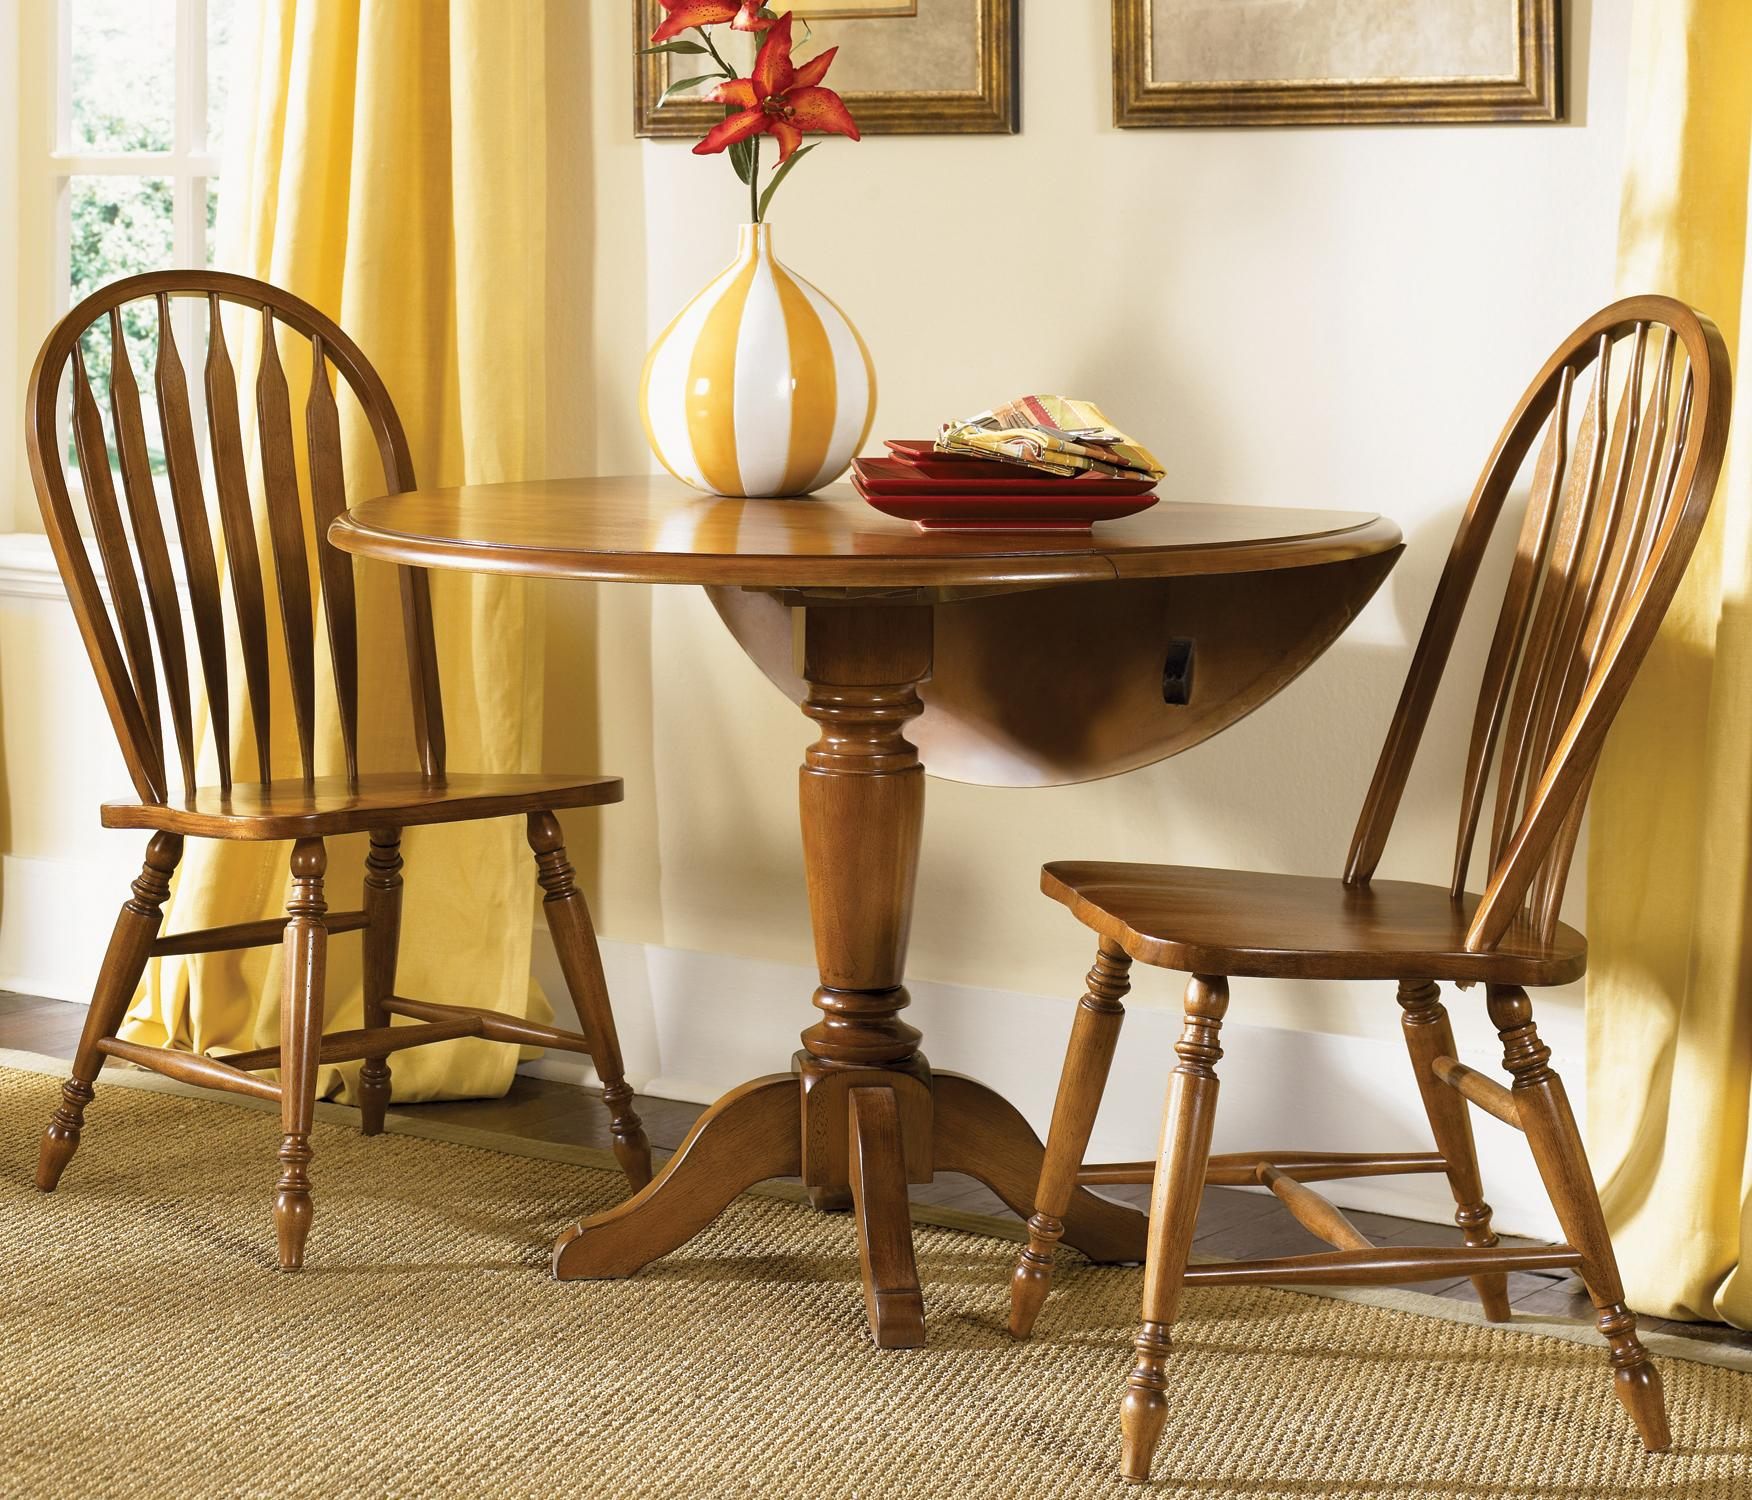 Liberty Furniture Low Country Three Piece Dining Set - Item Number: 76-CD-SET03